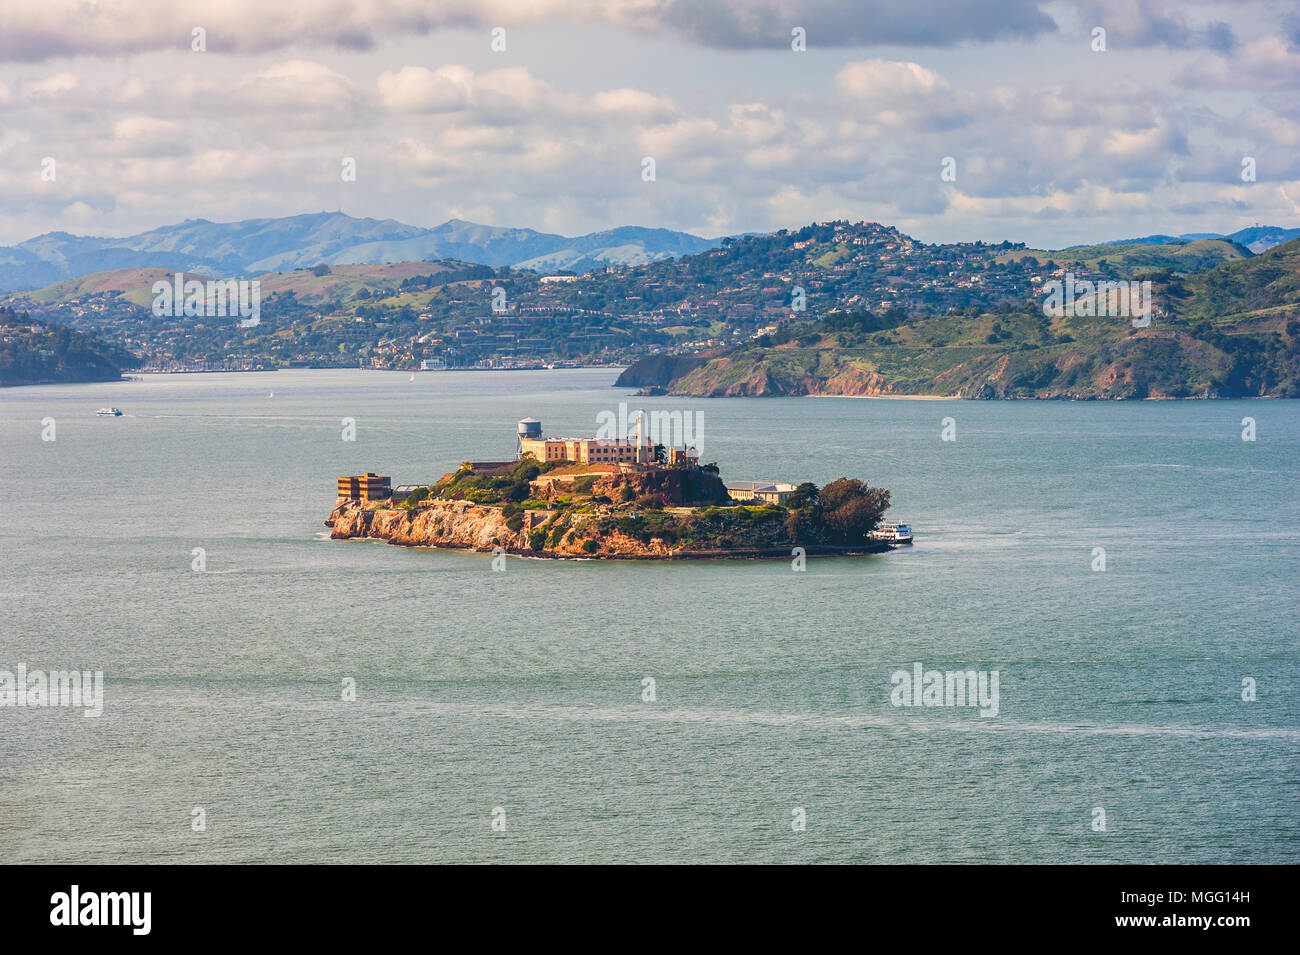 Alcatraz Island in the San Francisco Bay, 1,25 miles offshore of San Francisco, California, USA - Stock Image